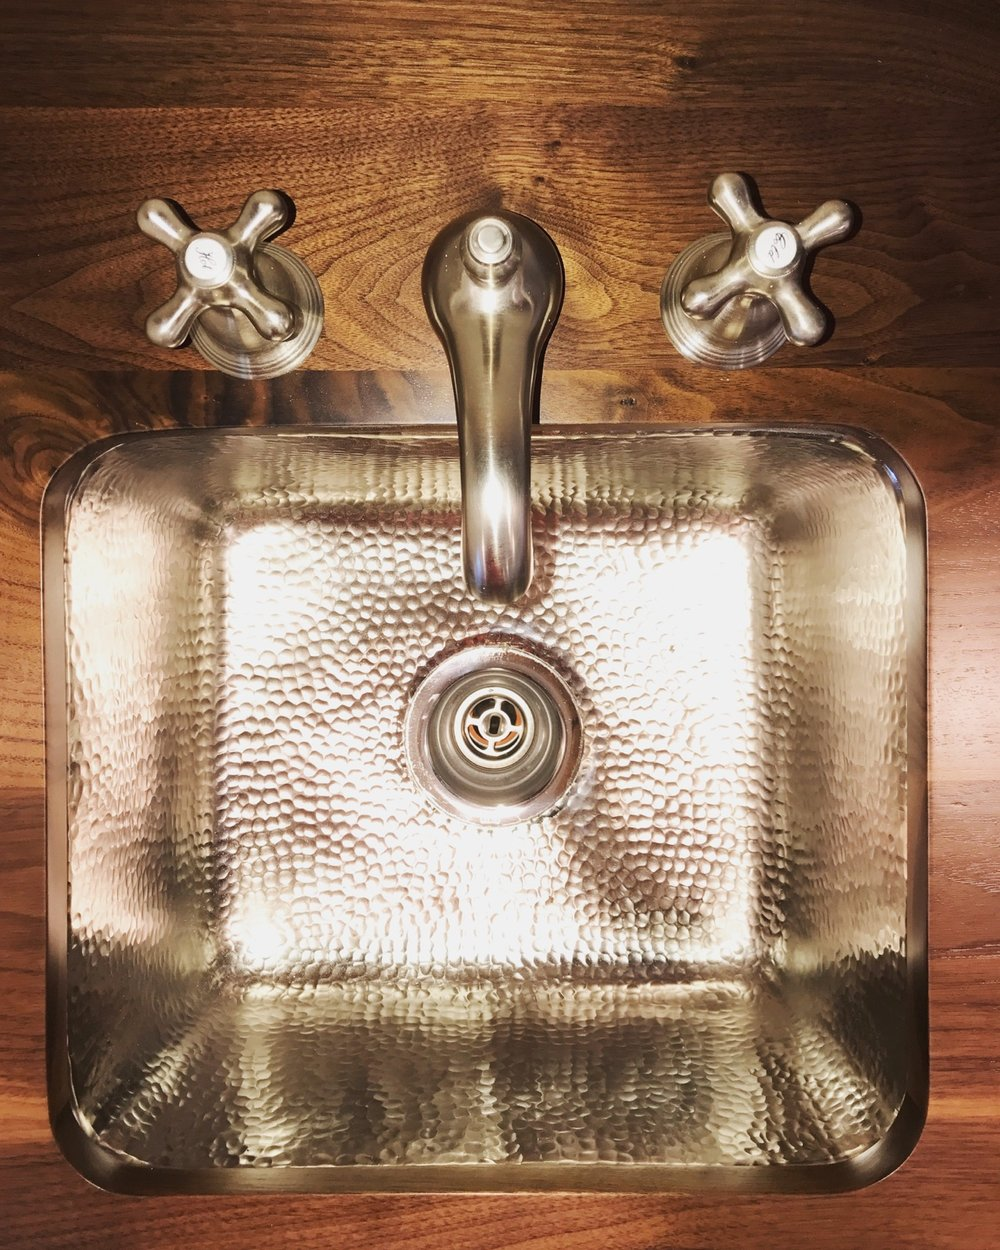 And because I really do love the hammered metal sink that much, here's a close up!